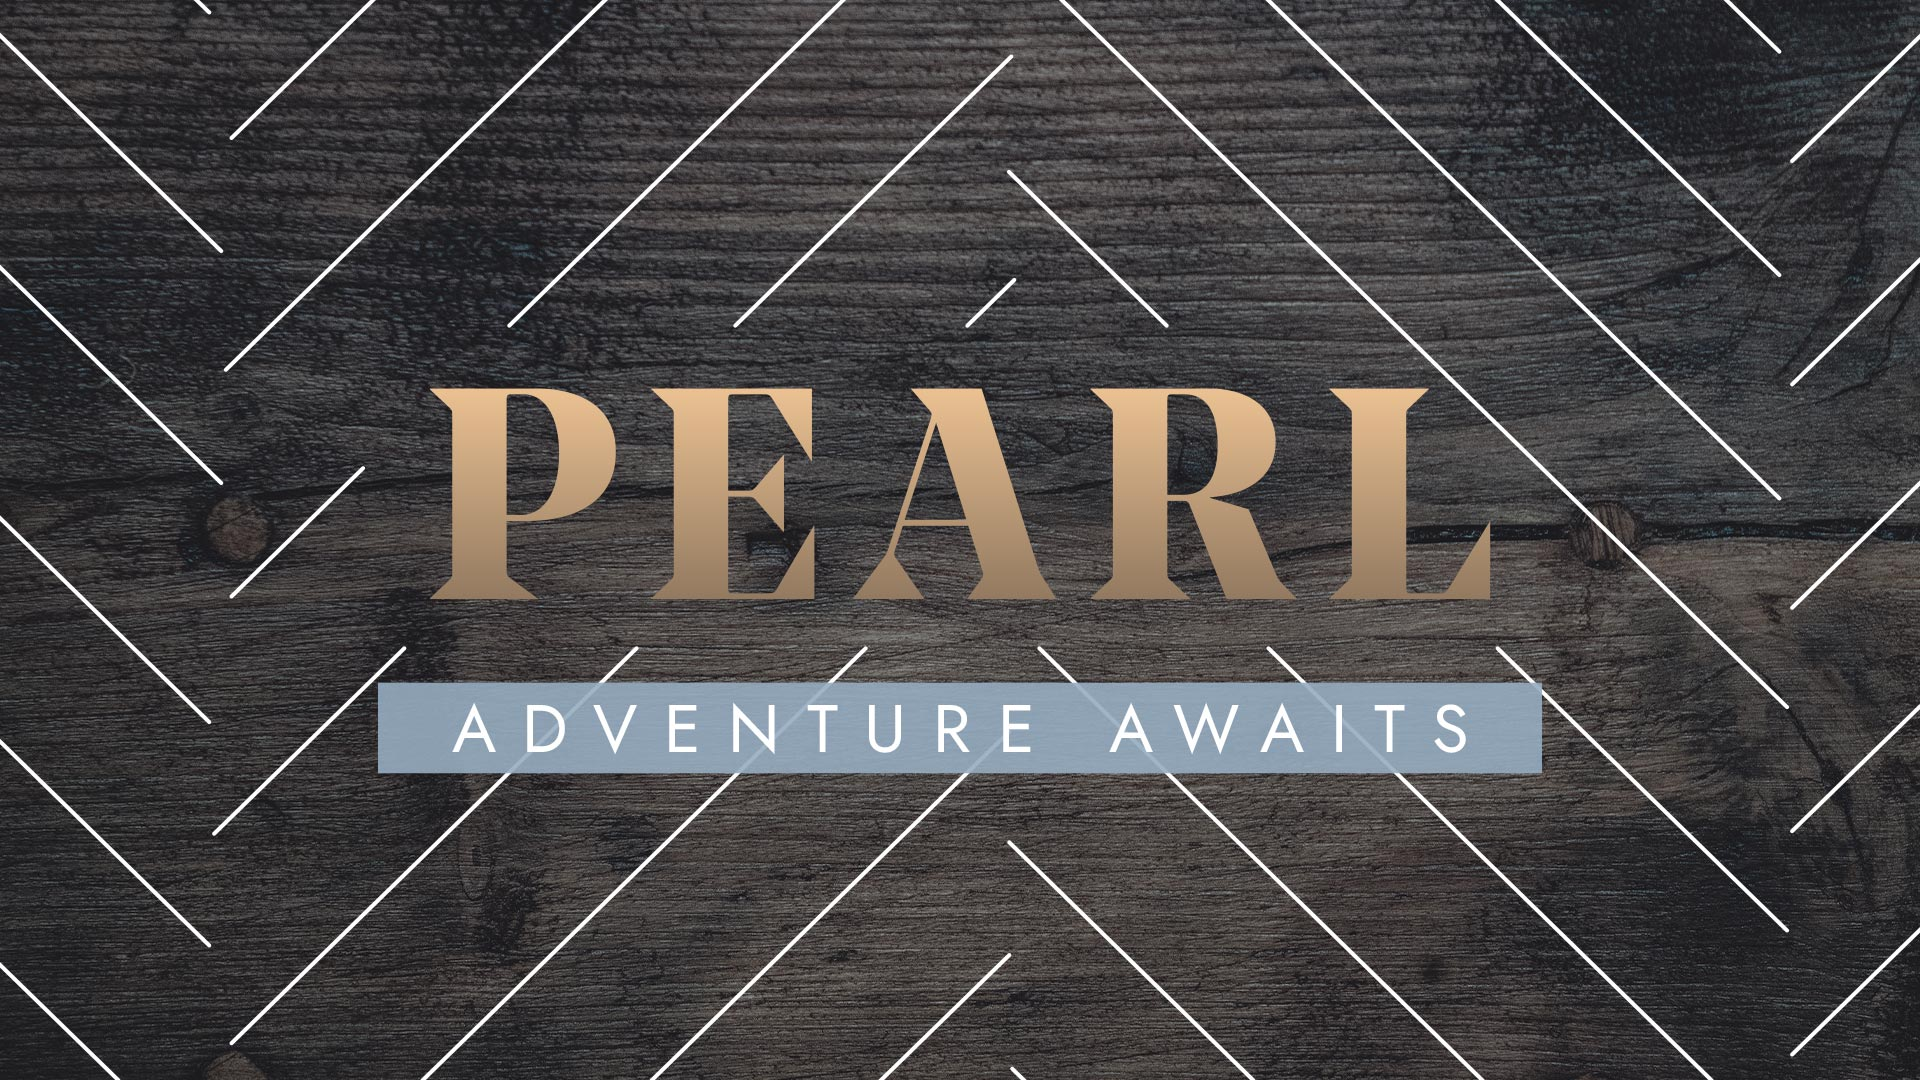 PEARL, Adventure Awaits